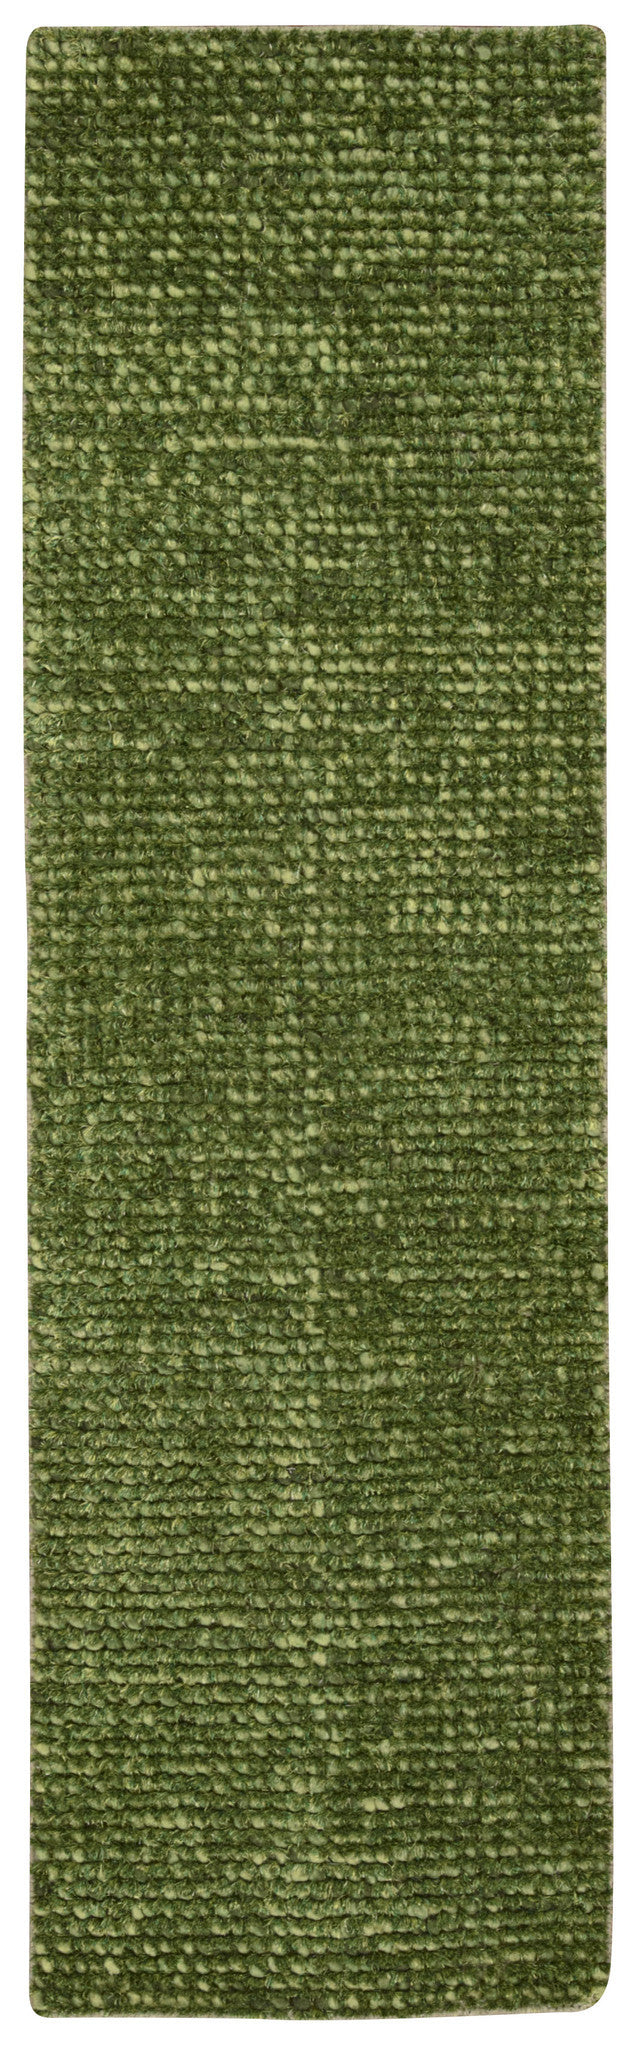 Nourison Fantasia Green Area Rug FAN1 GRE